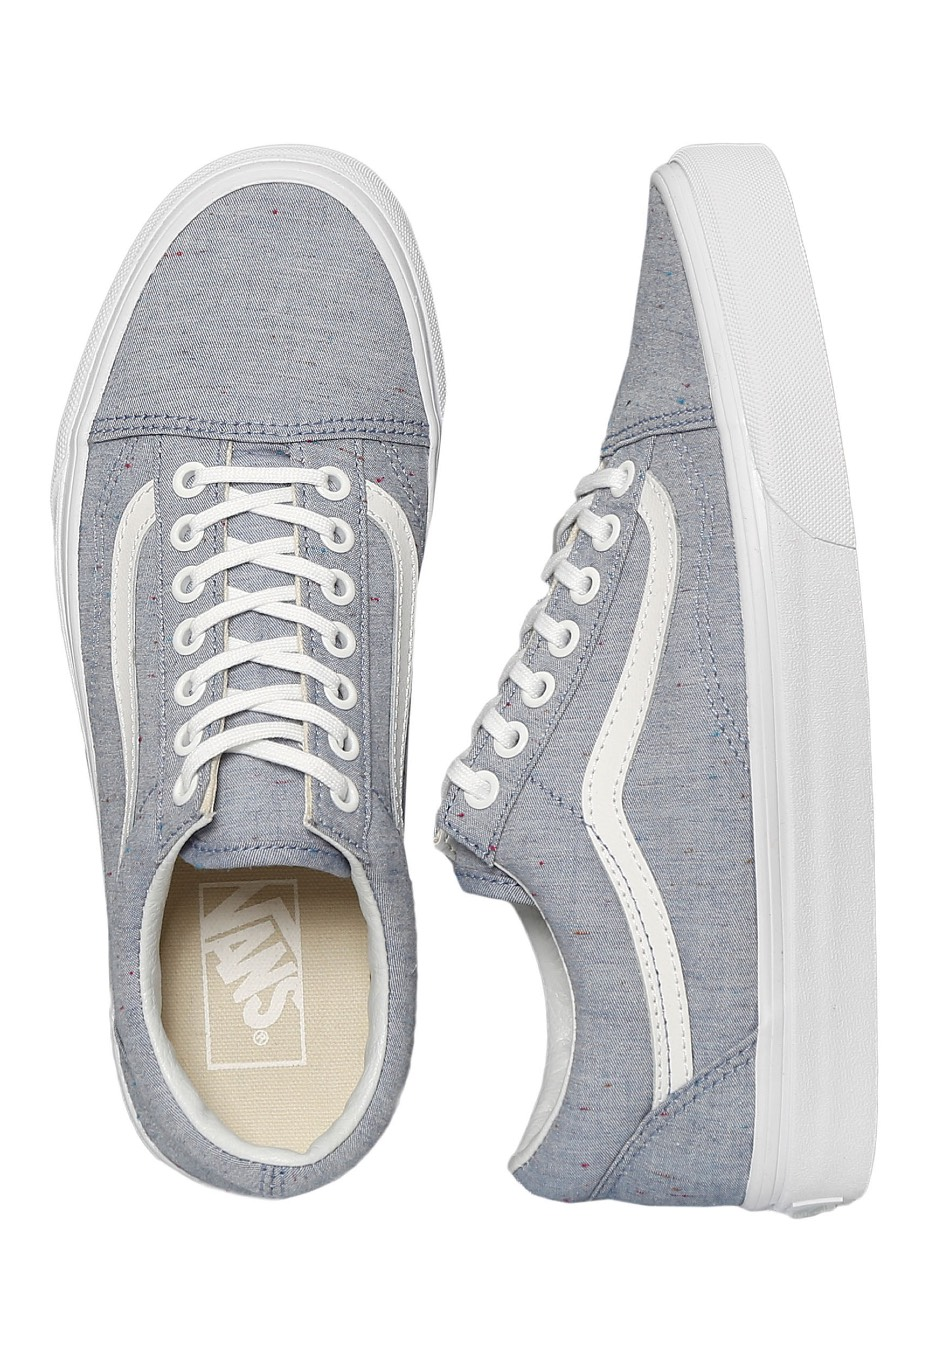 883eaa092893d3 Vans - Old Skool Speckle Jersey Blue True White - Girl Shoes -  Impericon.com UK